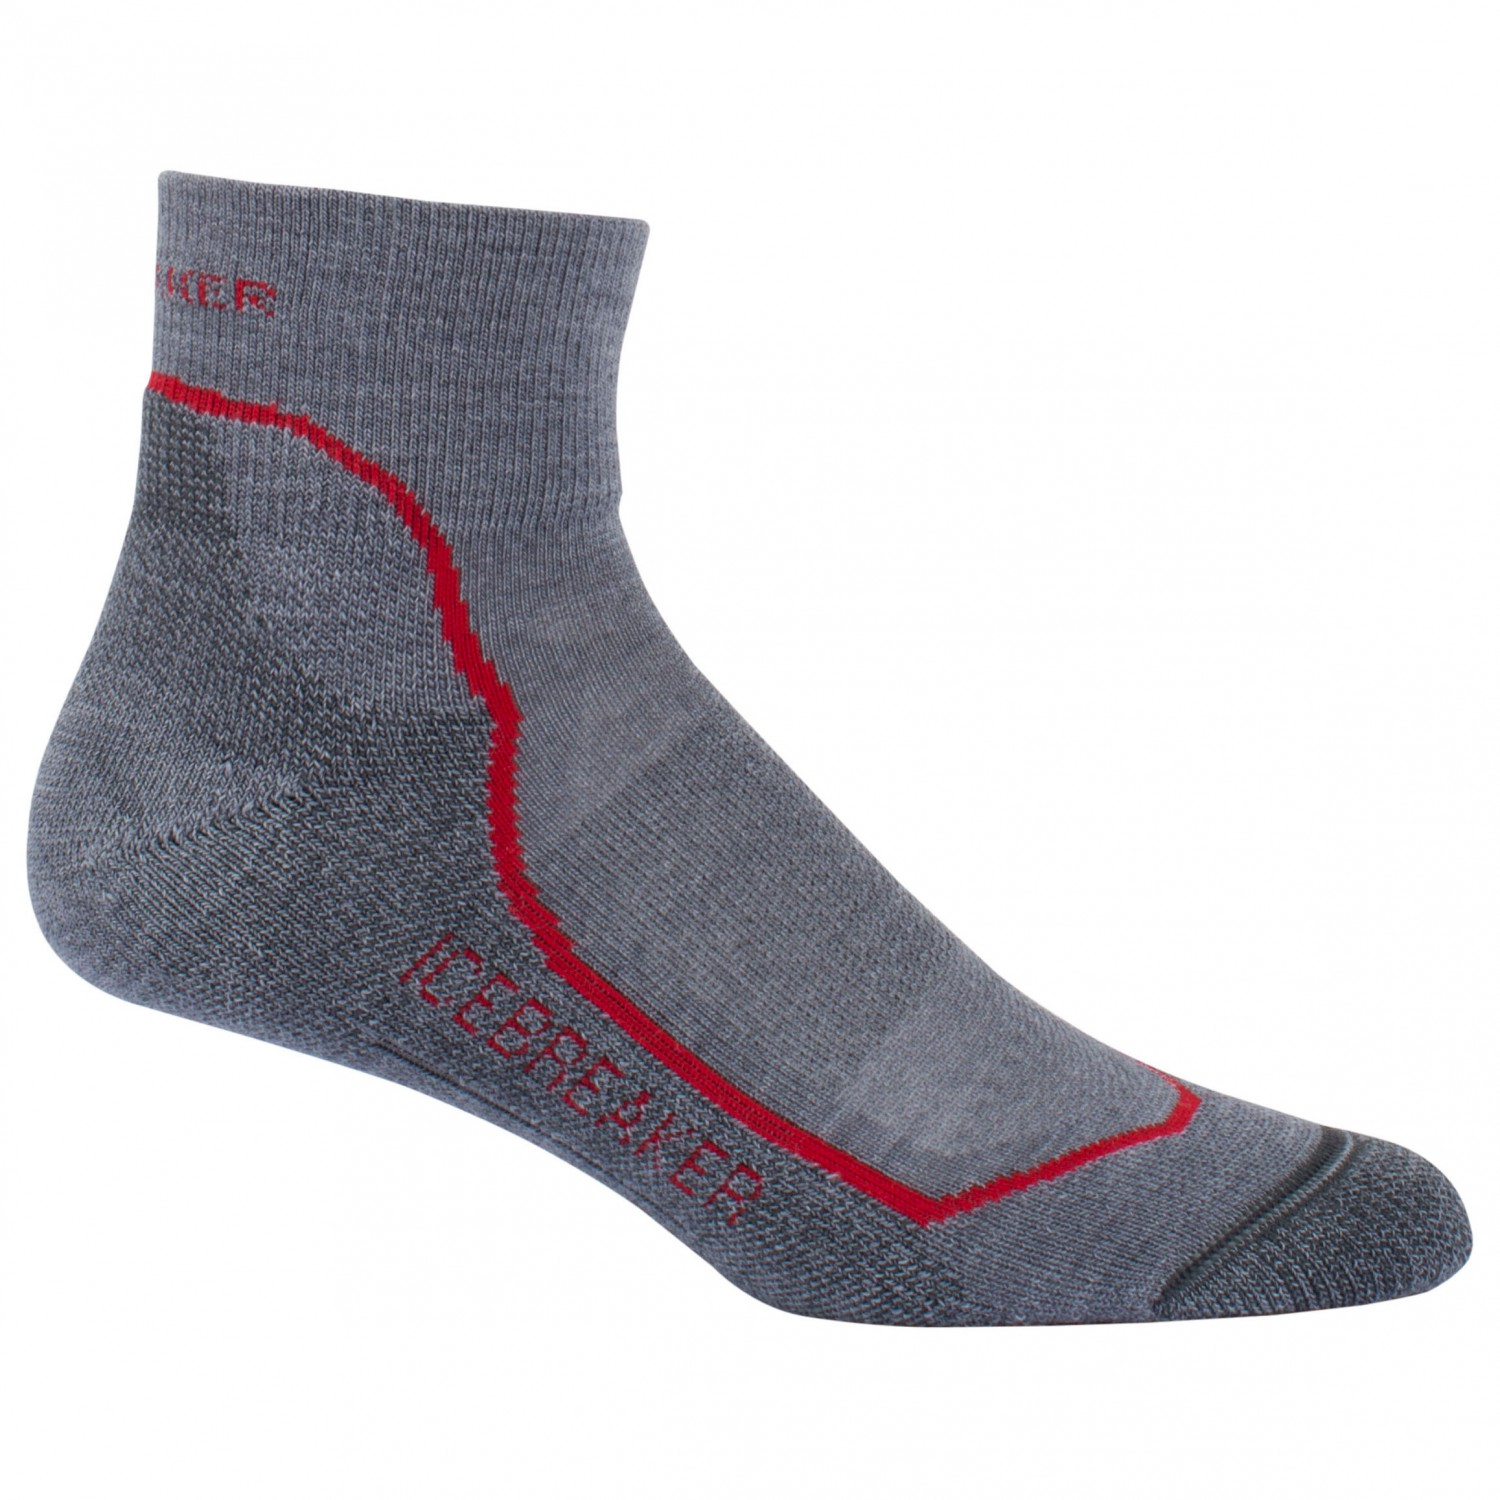 Icebreaker Stealth Rocket Heather Twister Wandersocken